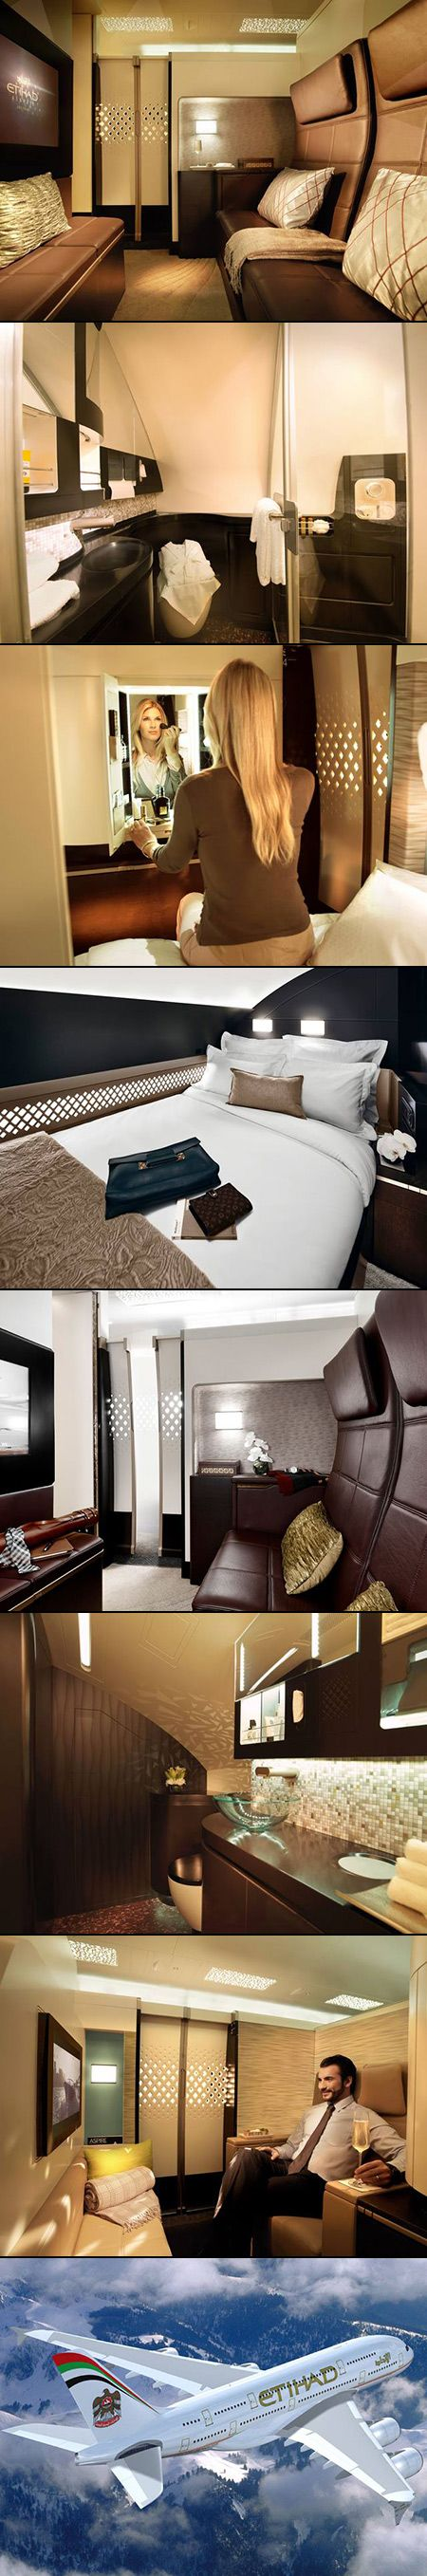 $40,000 Lands The Residence on Etihad's New A380, These Luxuries May Surprise You